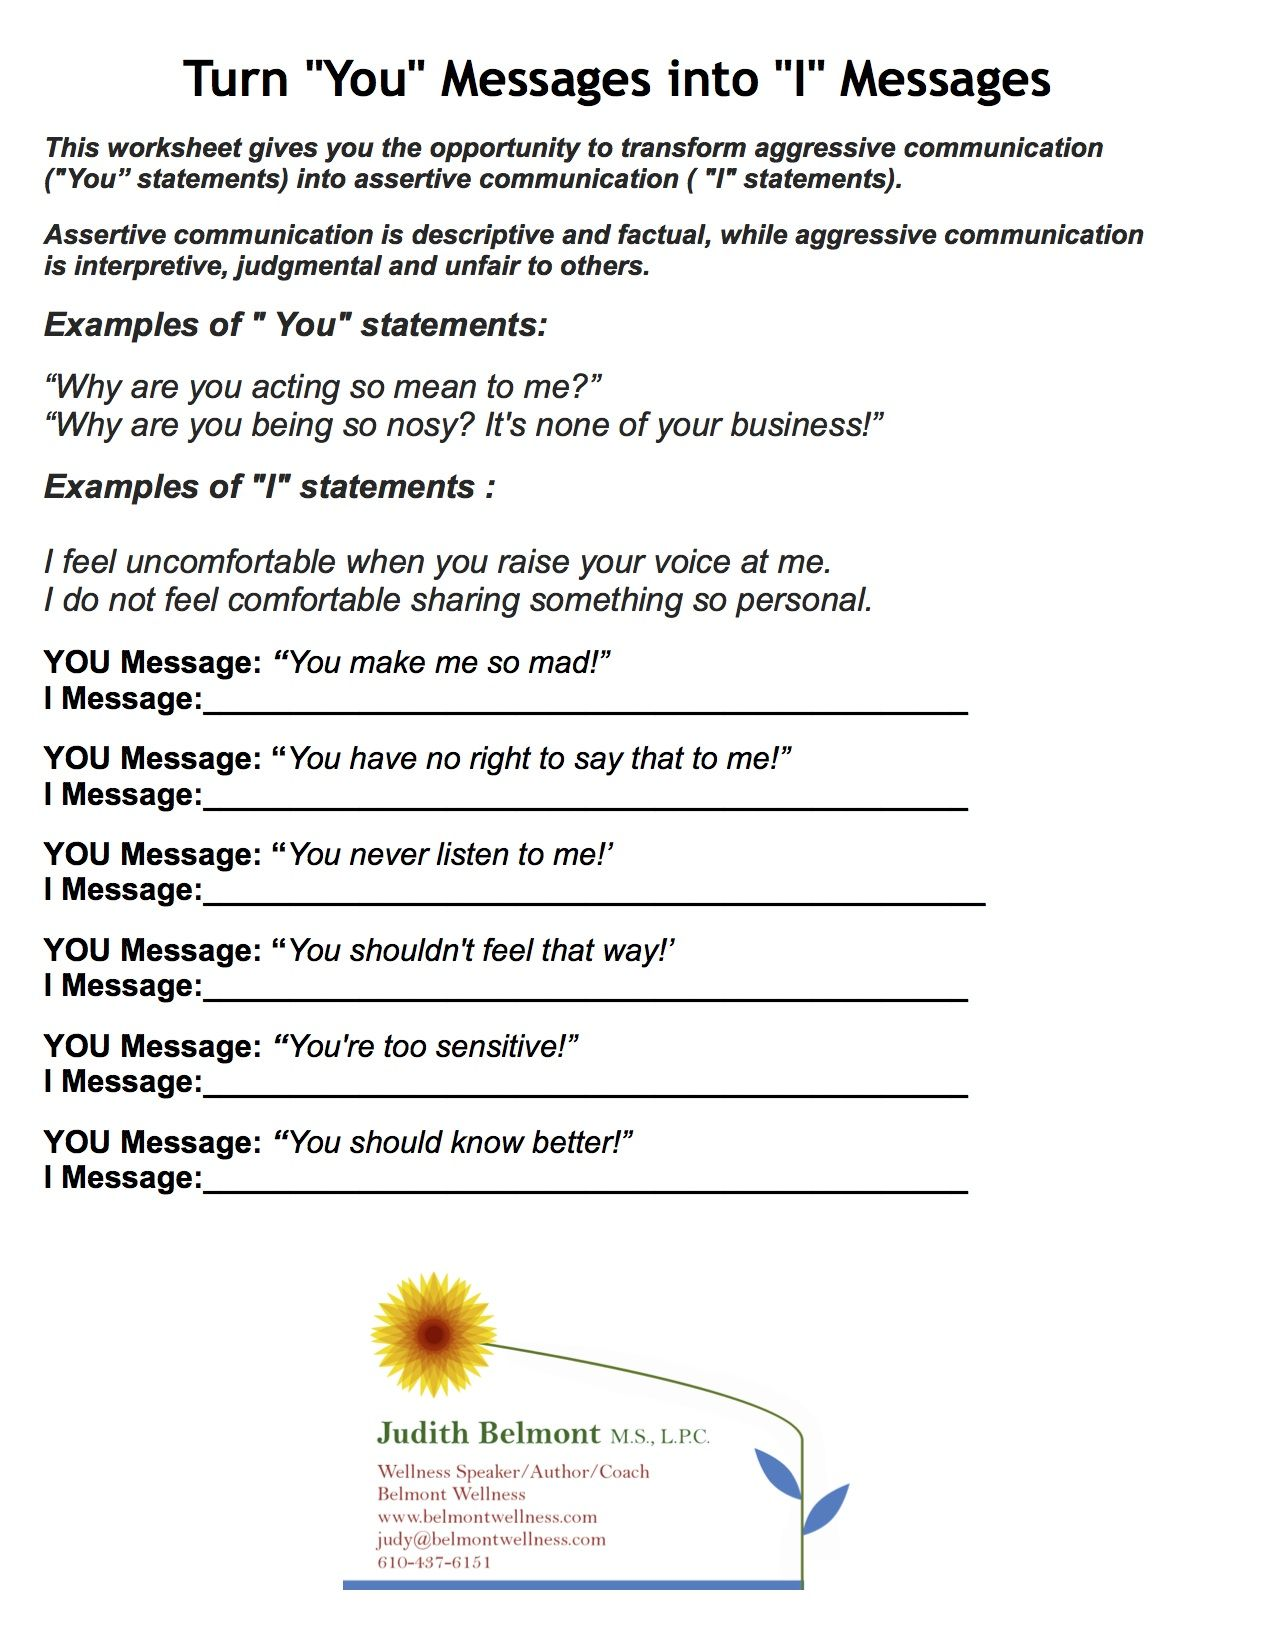 Worksheets Assertive Communication Worksheet these are games and activities that great for team building turn messages into this is one of the free sample worksheetsactivities hel